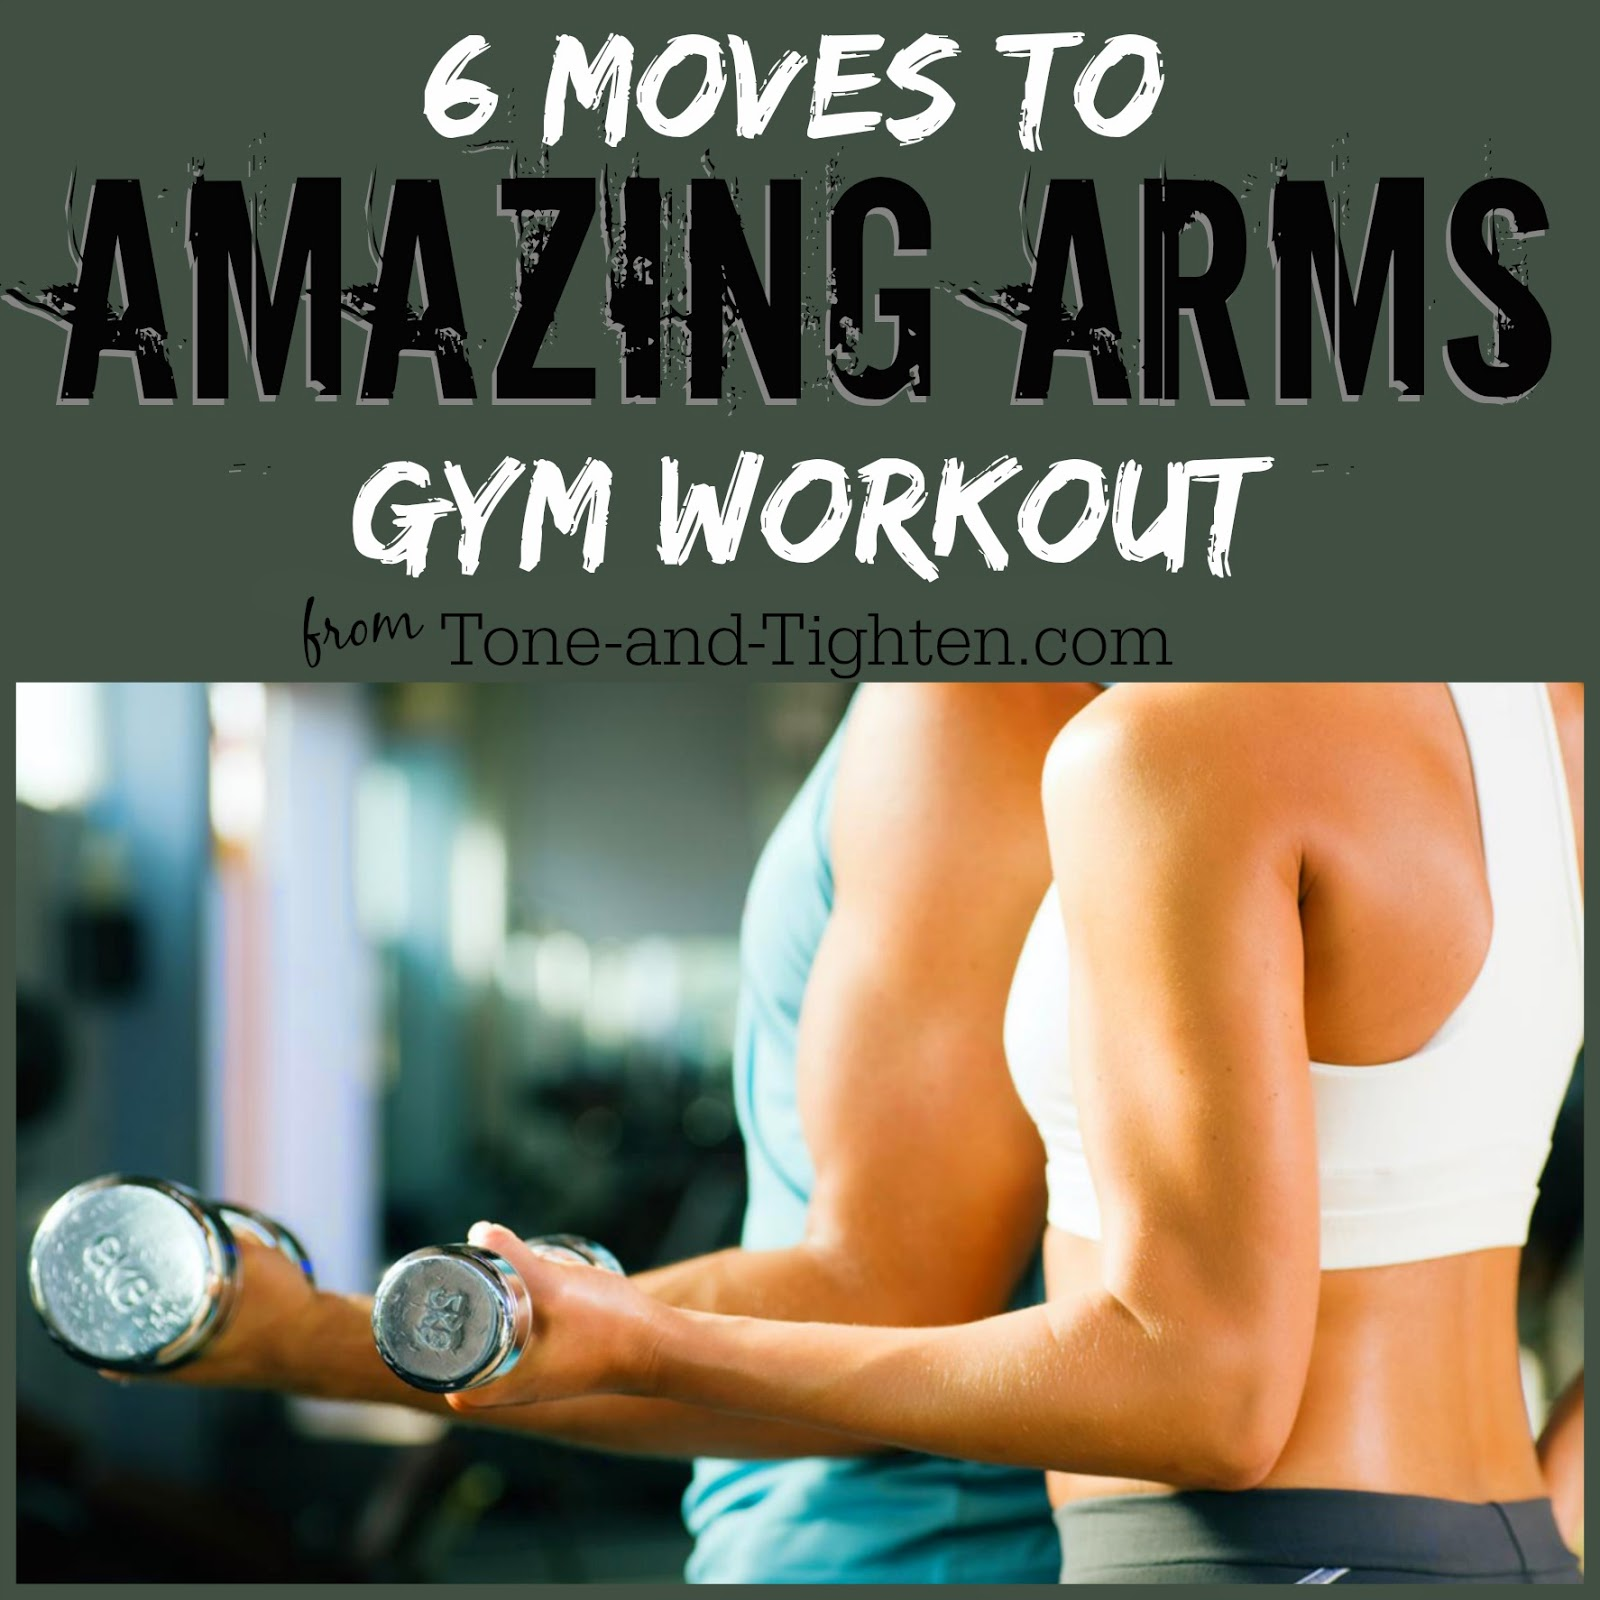 Gym Arm Workout